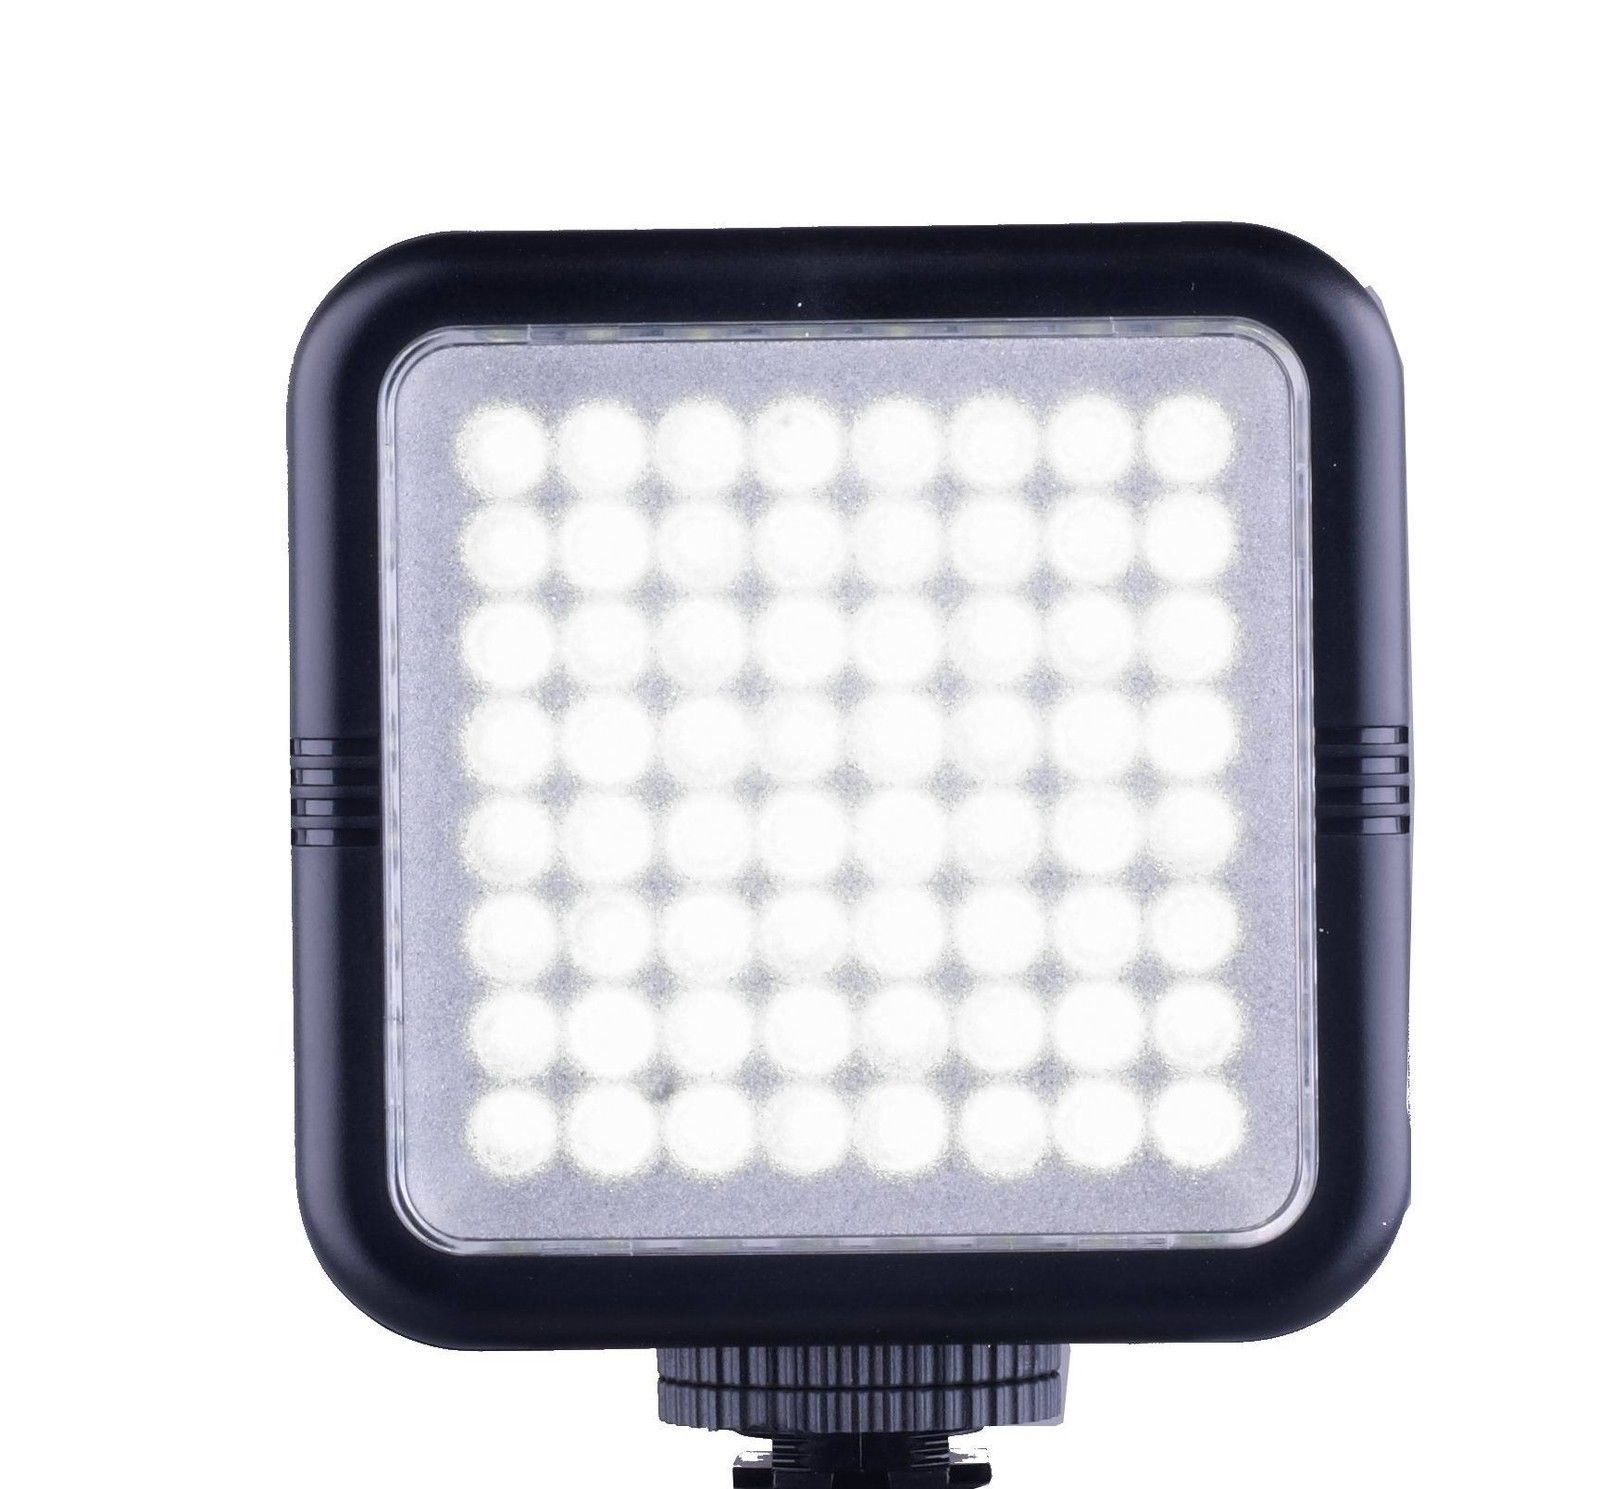 aliexpress photography lamps lights remarking item com in godox consumer camera photographic set lighting flash equipment electronics alibaba on studio from